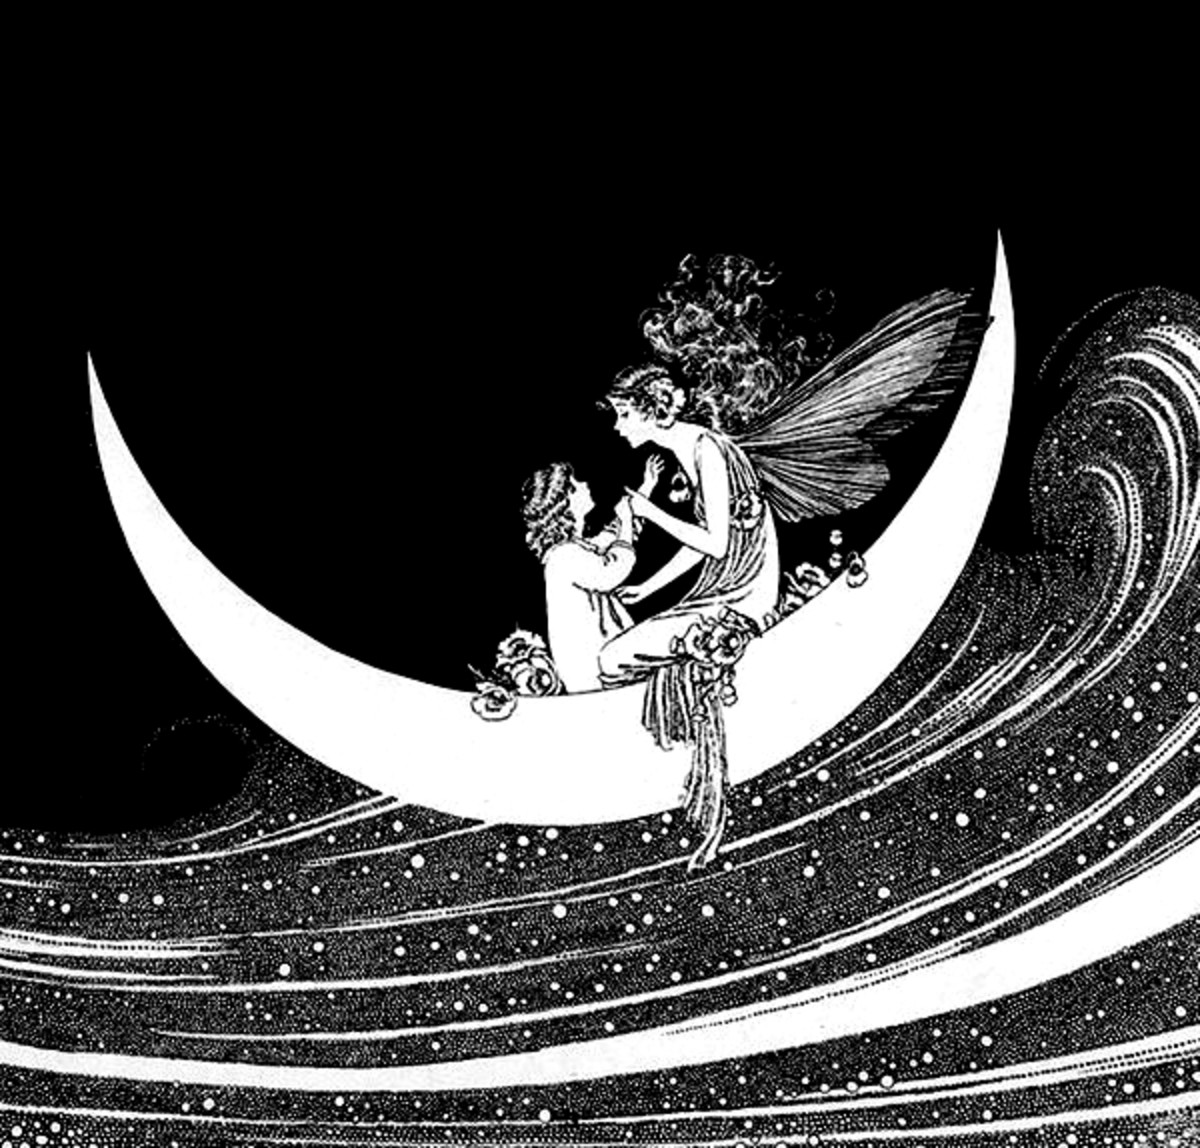 """Here we show a portion of 'Anne rides on the Heavenly River' - it is from Ida Rentoul Outhwaite's suite published in """"The Enchanted Forest"""" (1921)."""